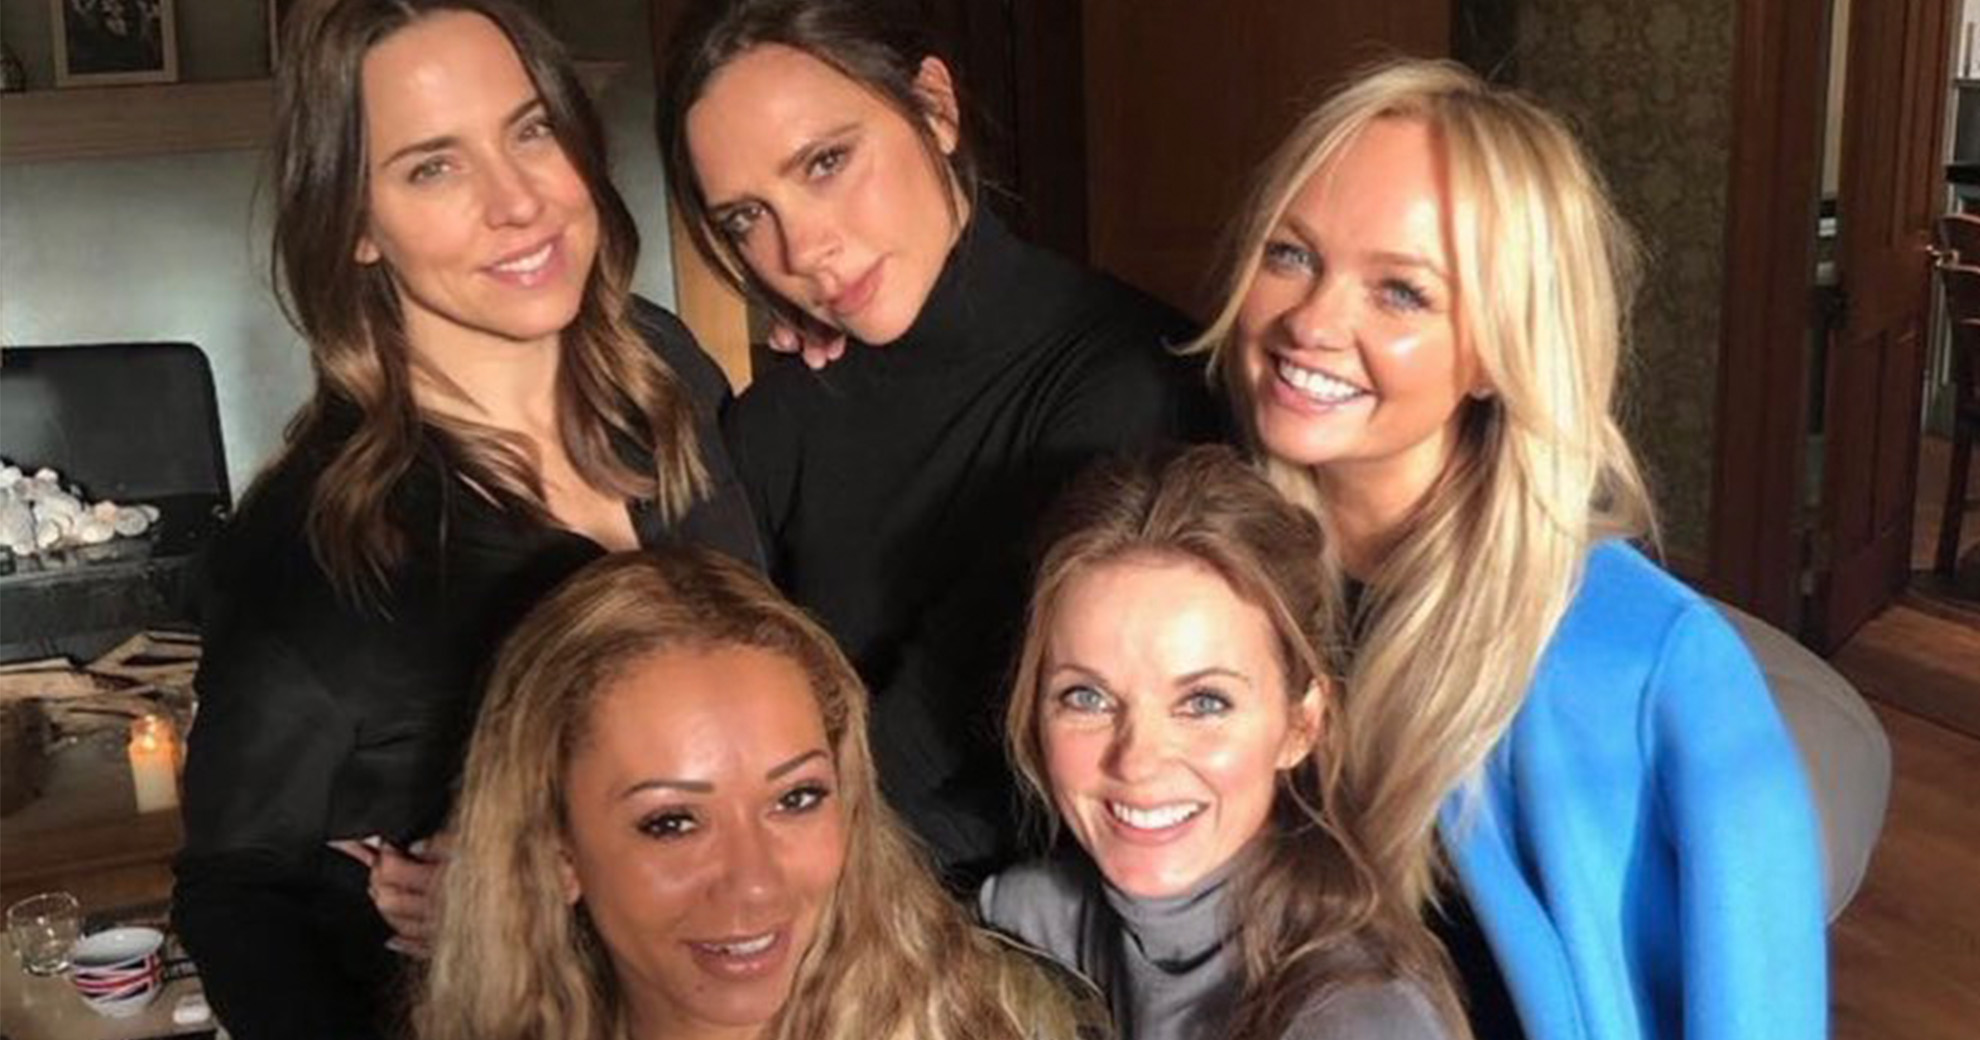 Eagle-Eyed Fans Spotted Something Suspicious In That Spice Girls Reunion Photo